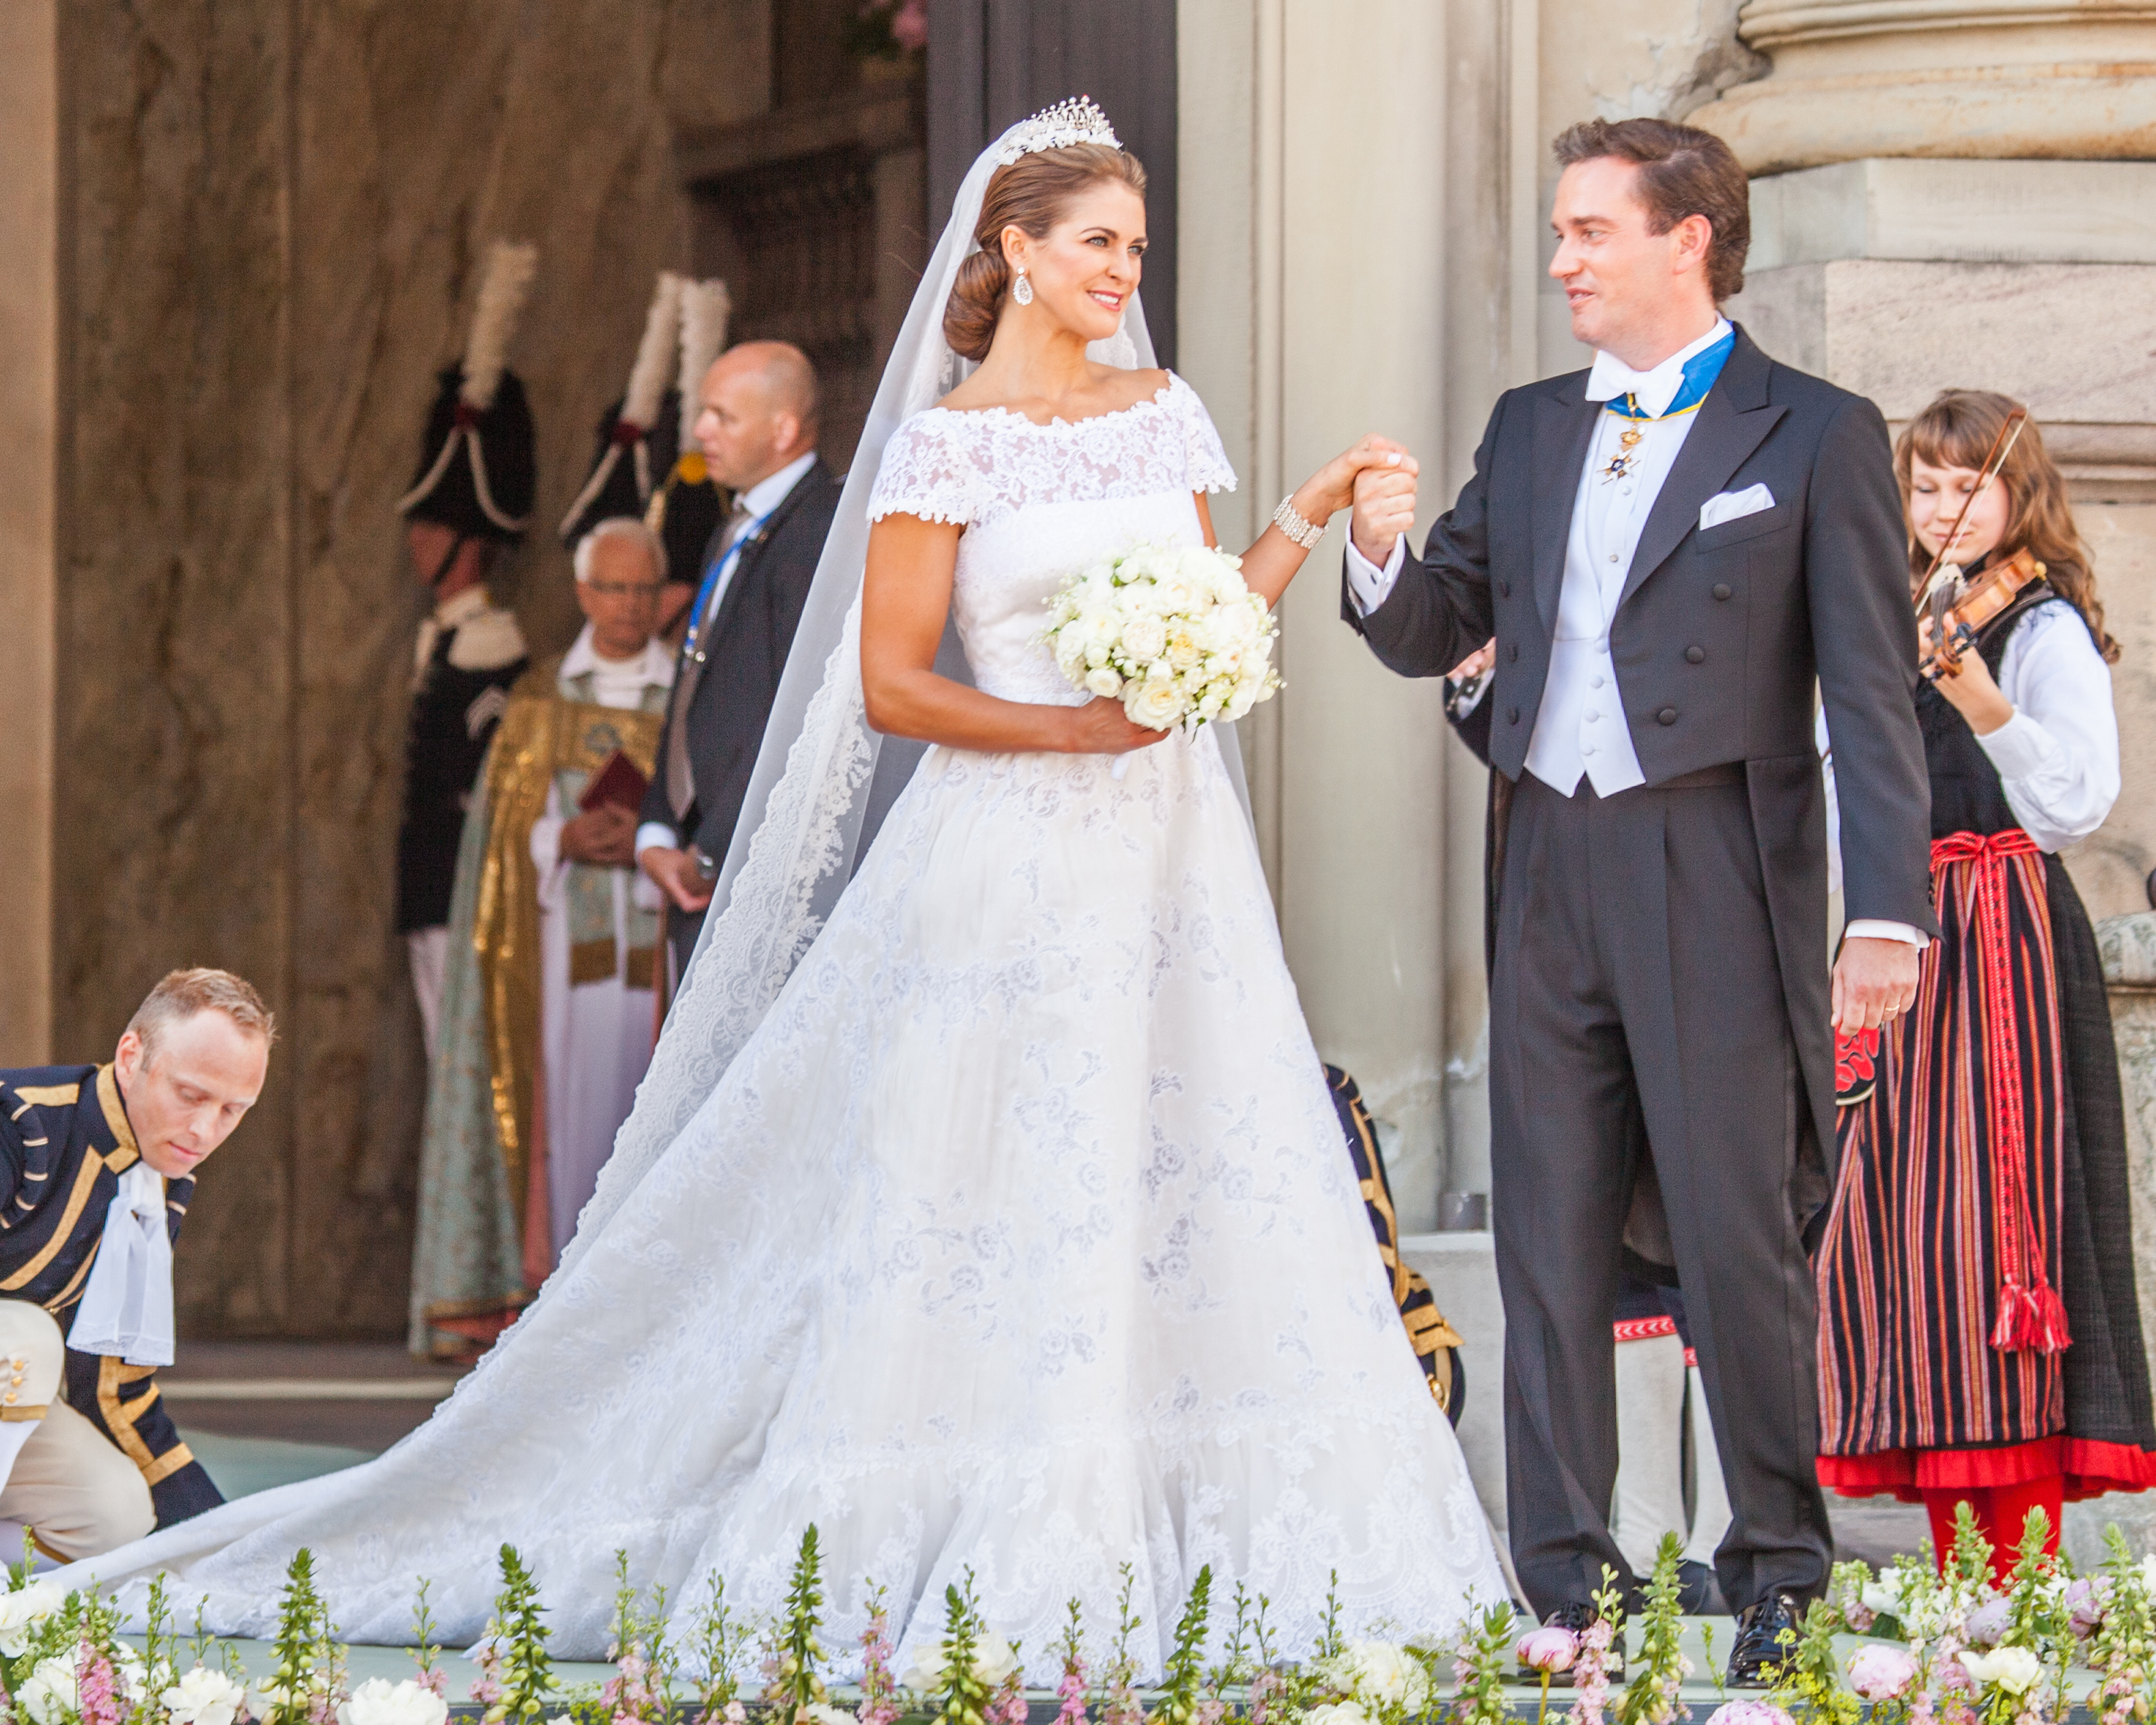 File:Princess Madeleine of Sweden 16 2013.jpg - Wikimedia Commons